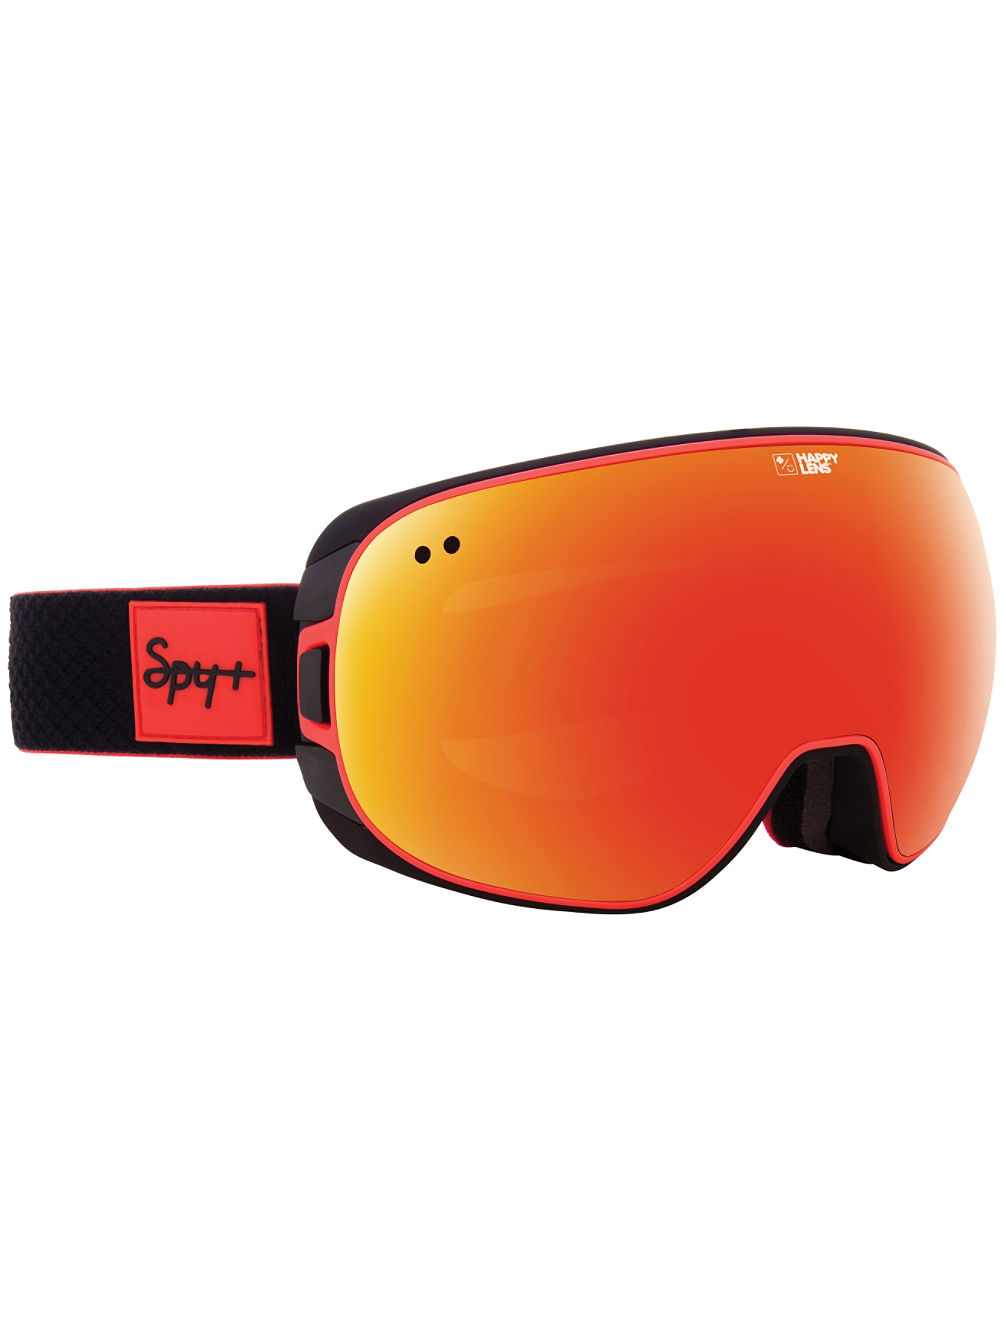 spy-doom-black-red-bonus-lens